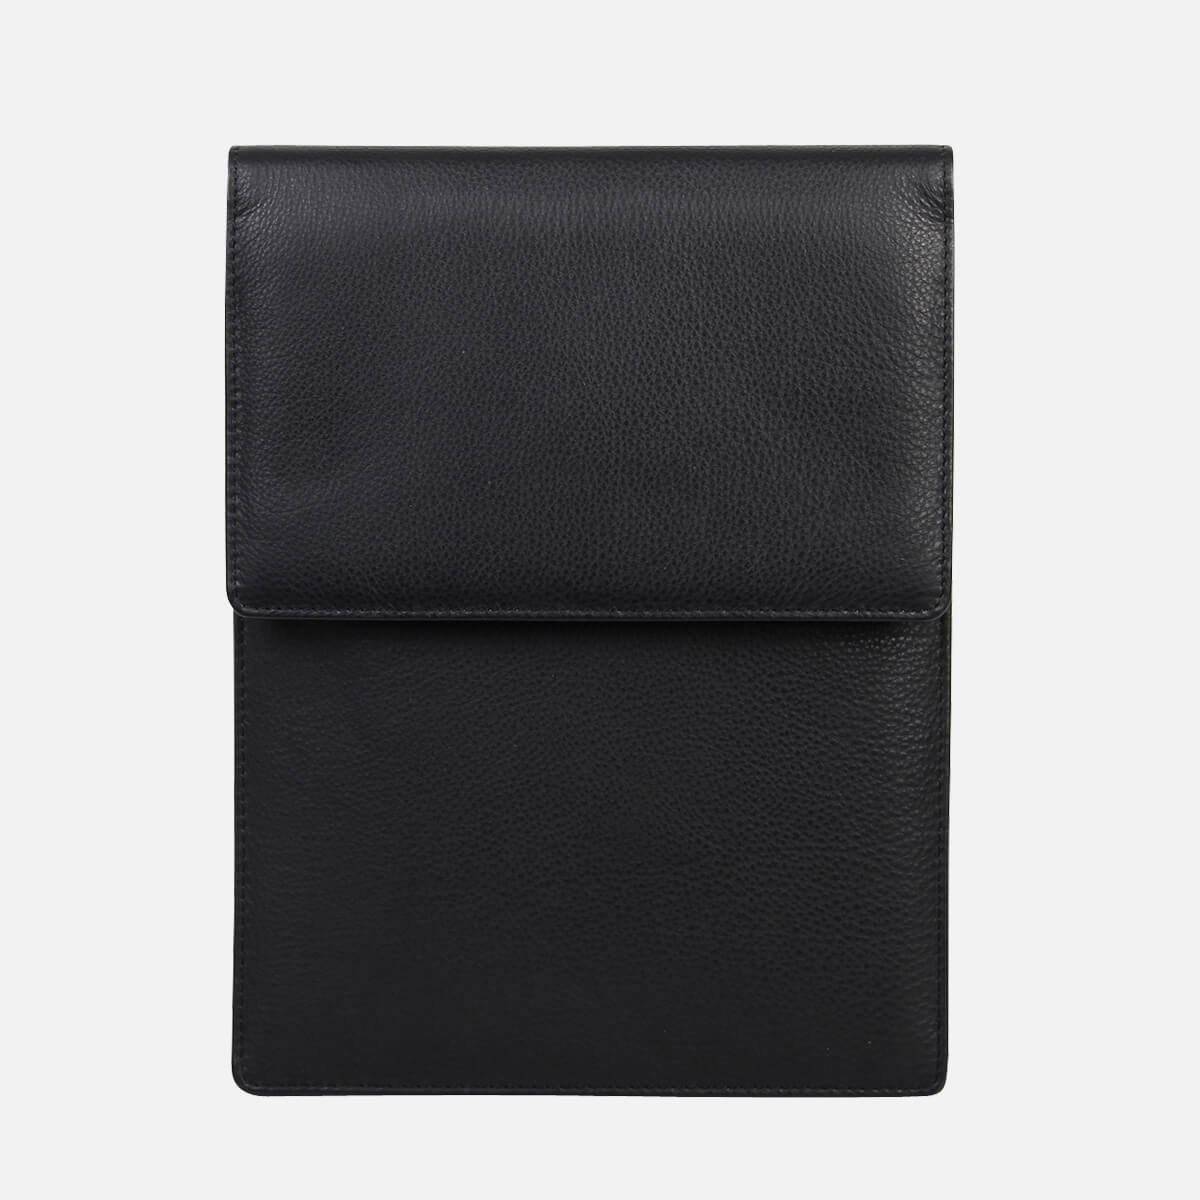 Steve Pebble Leather iPad Sleeve